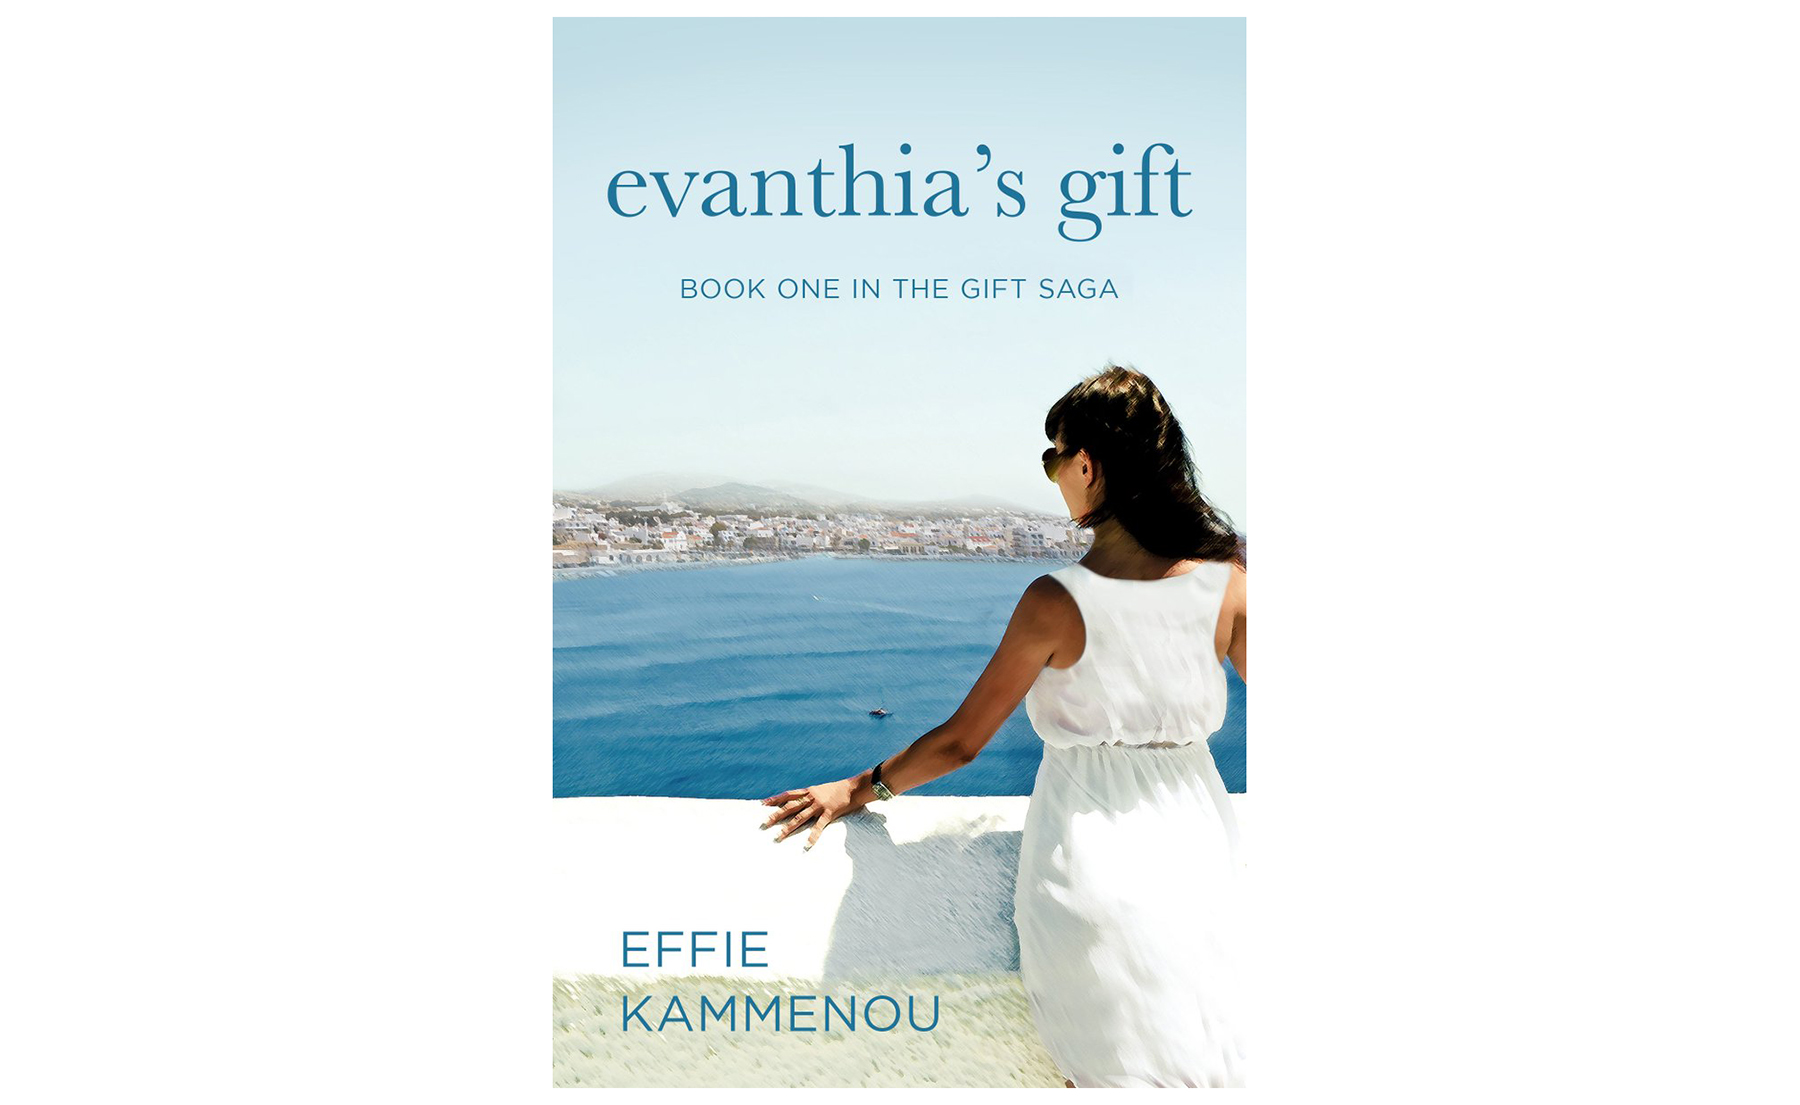 Evanthia's Gift: Book One in The Gift Saga, by Effie Kammenou